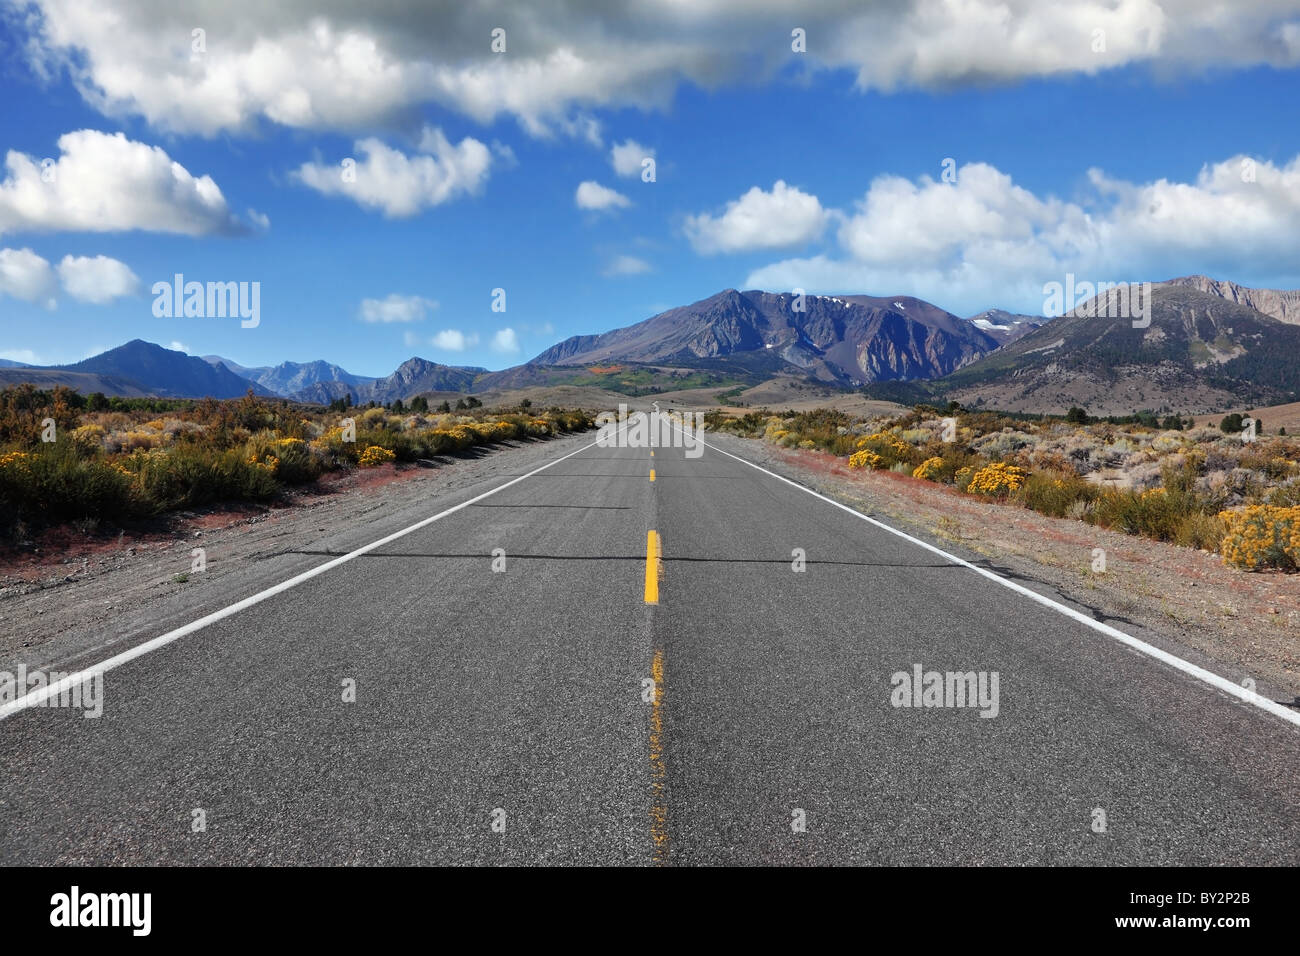 The road goes into the distance. Pride of the nation - a great American road goes through the beautiful desert to - Stock Image